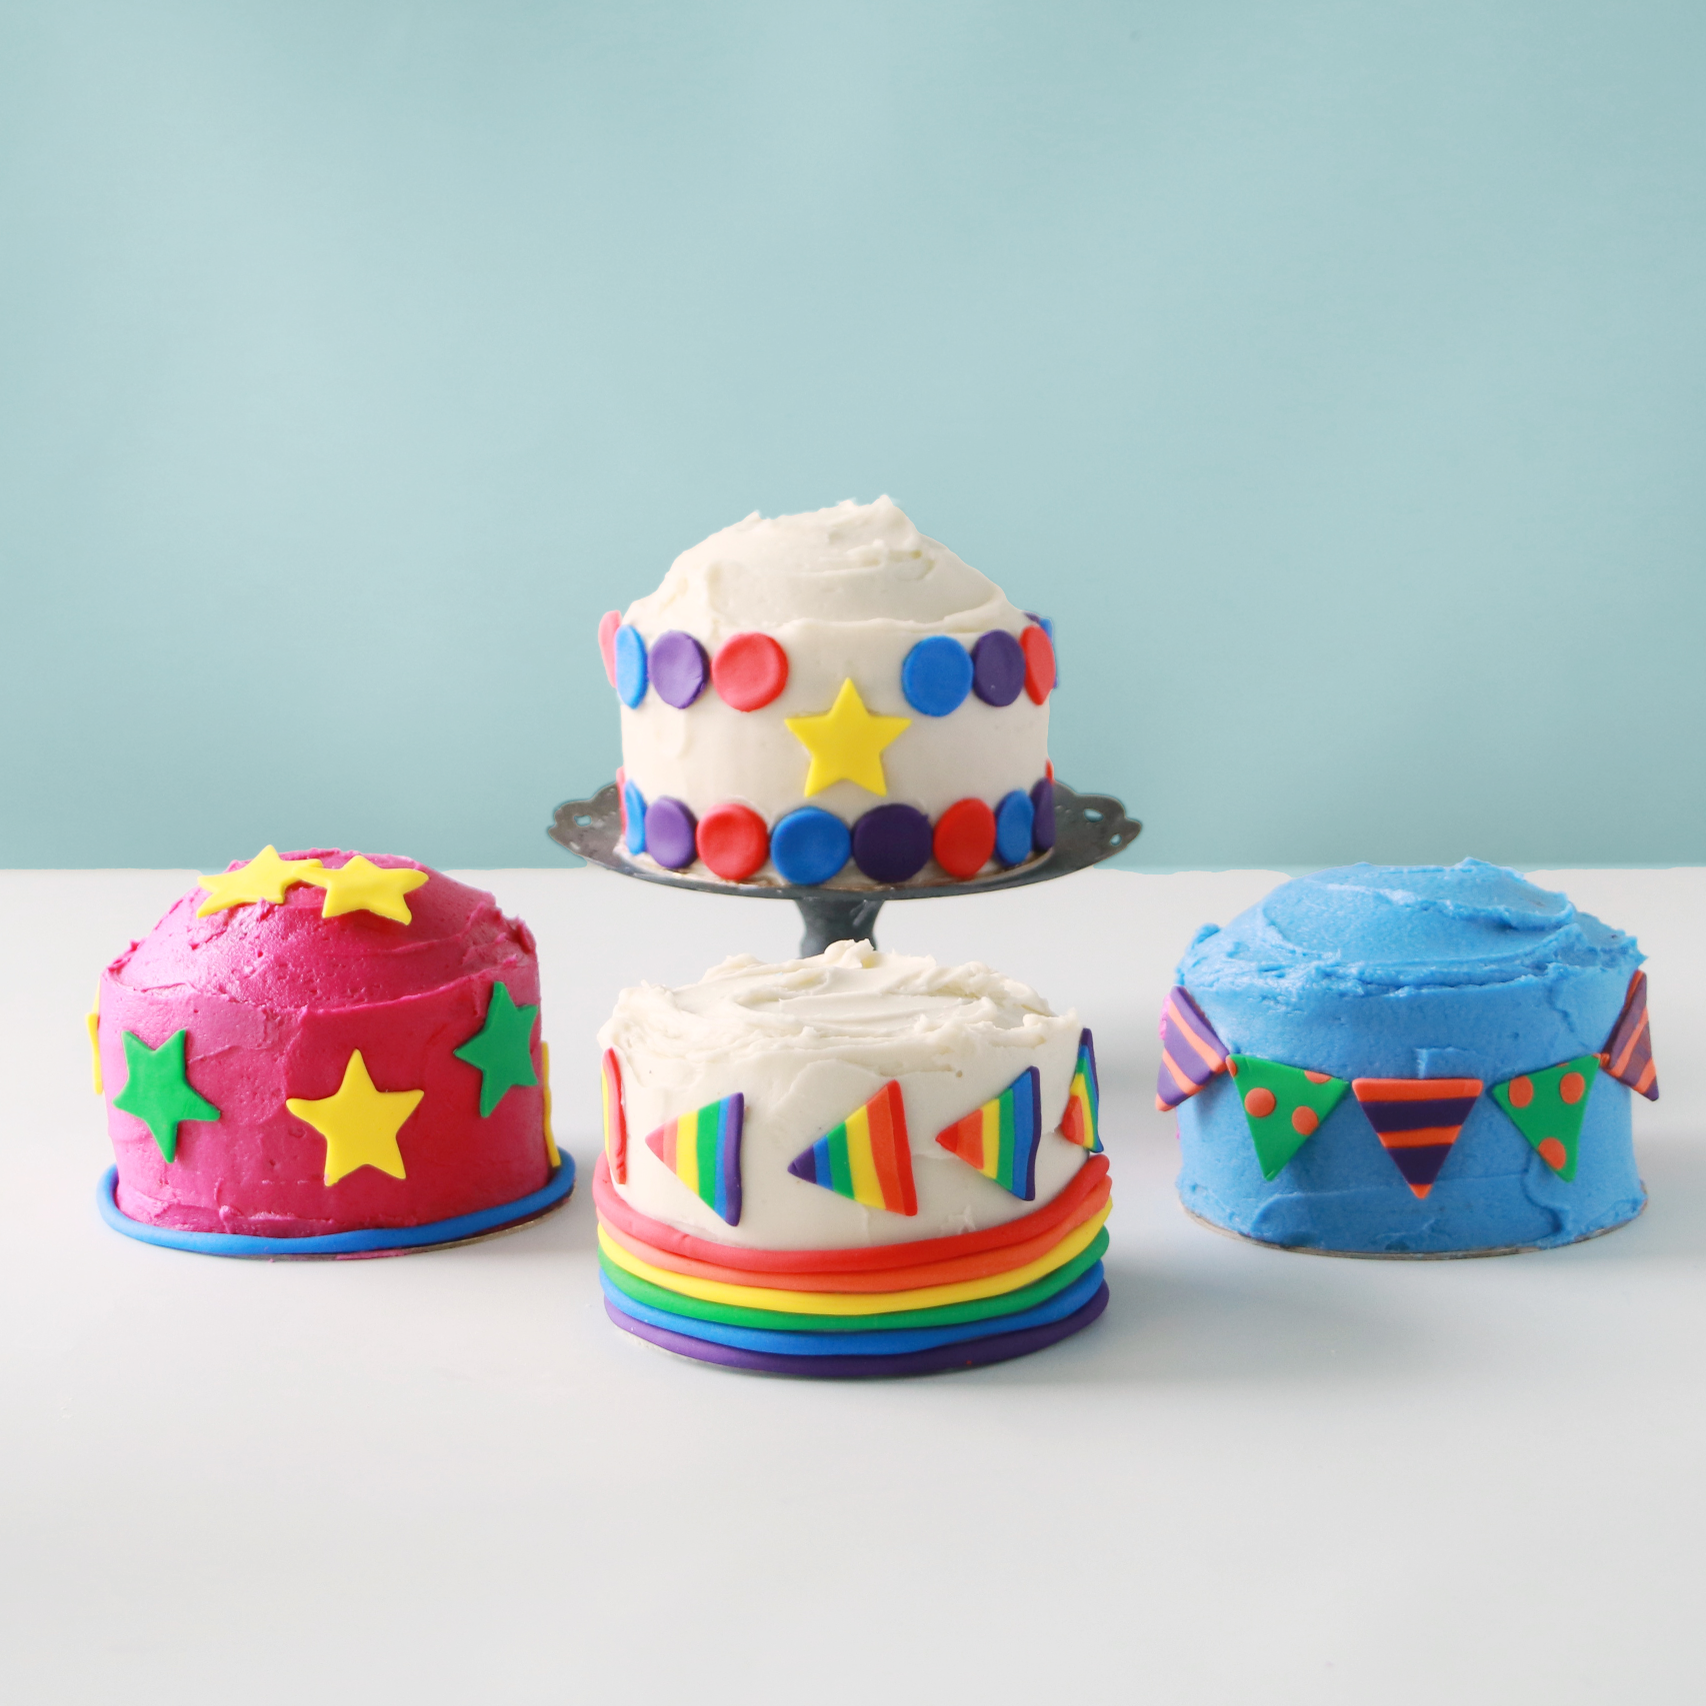 Our   mini cake kits   are a great activity to do with kids and make a fun alternative to family game night! We supply all of the non-perishable ingredients and tools (including disposable cake pans so that you can focus on the fun!